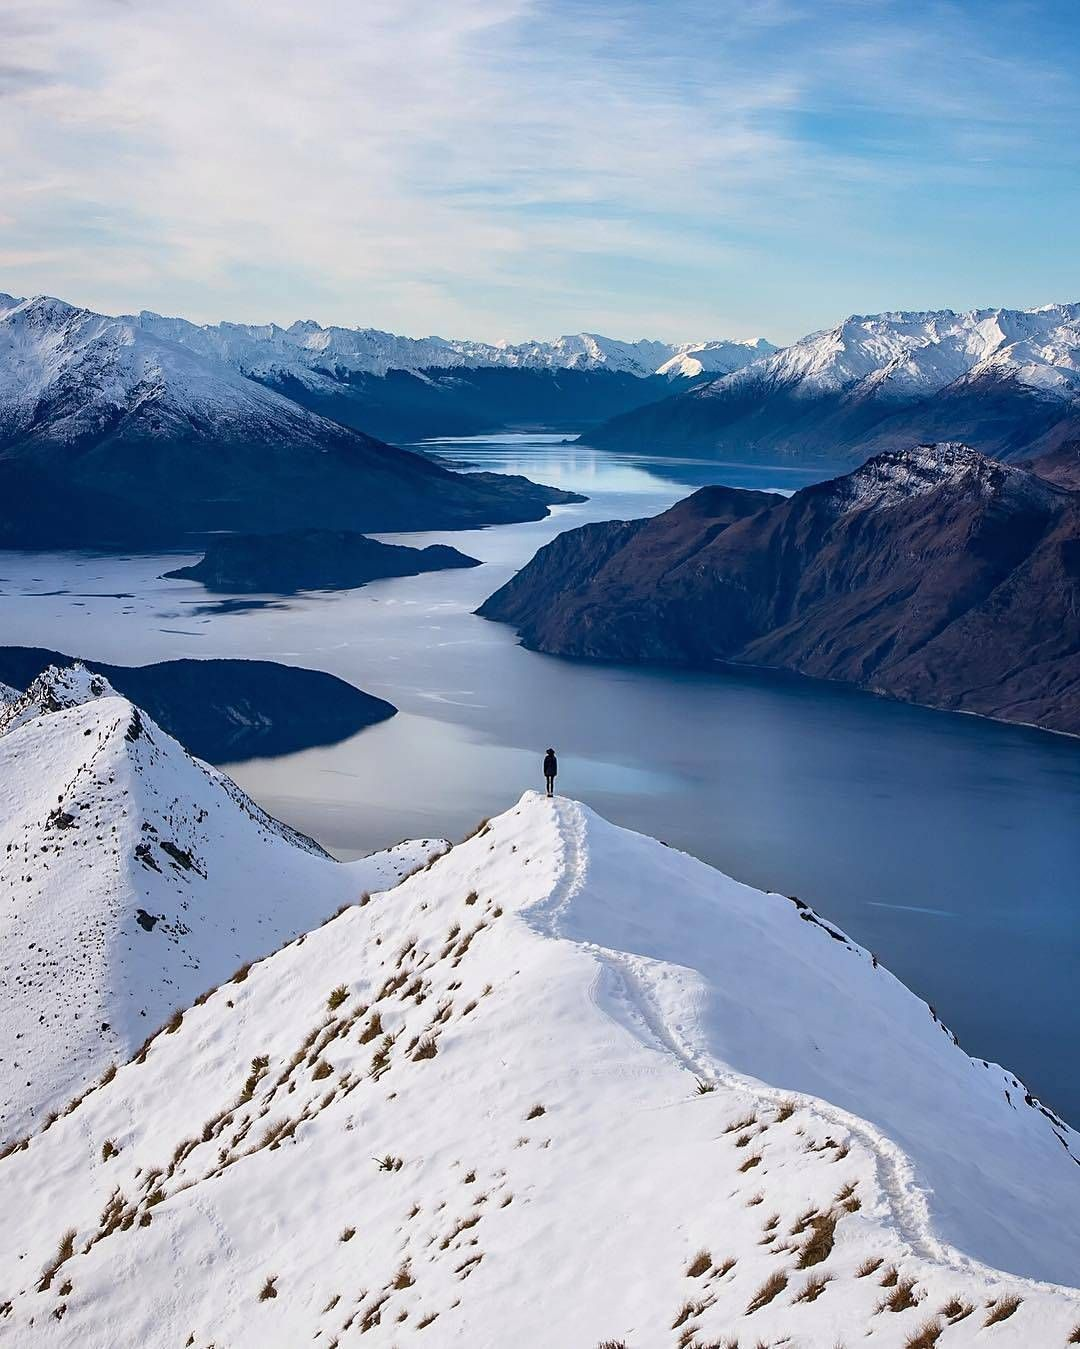 Lake Wanaka On The South Island Of New Zealand. Photo By